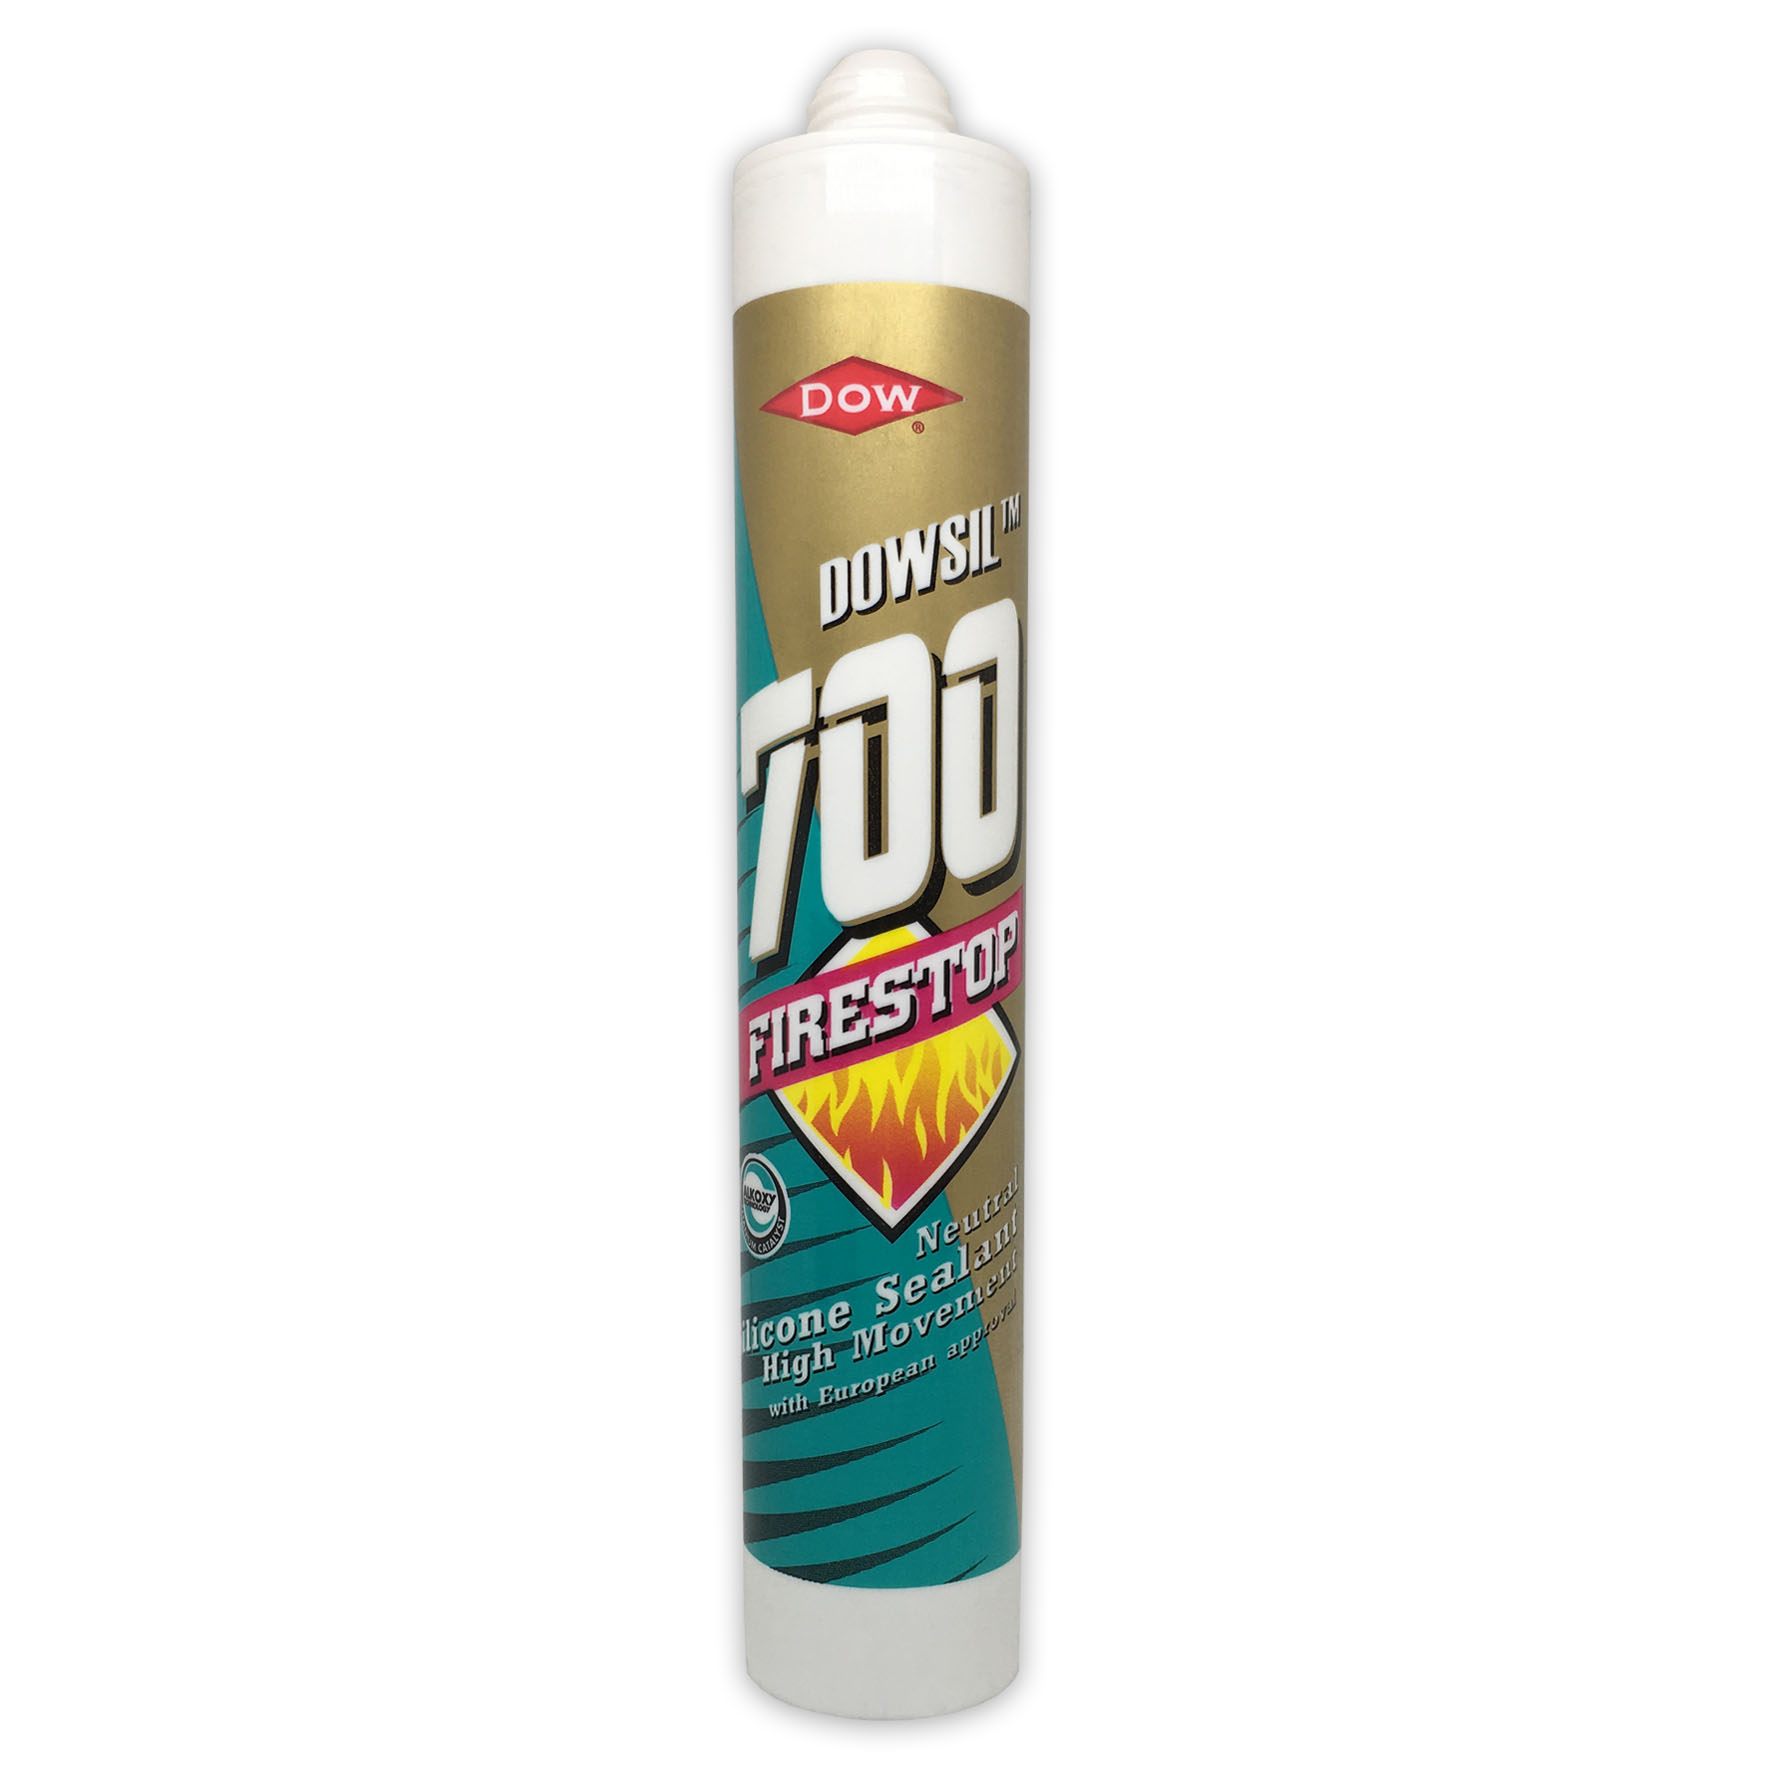 Dow Corning Firestop 700 4HR Fire Resistant Sealant